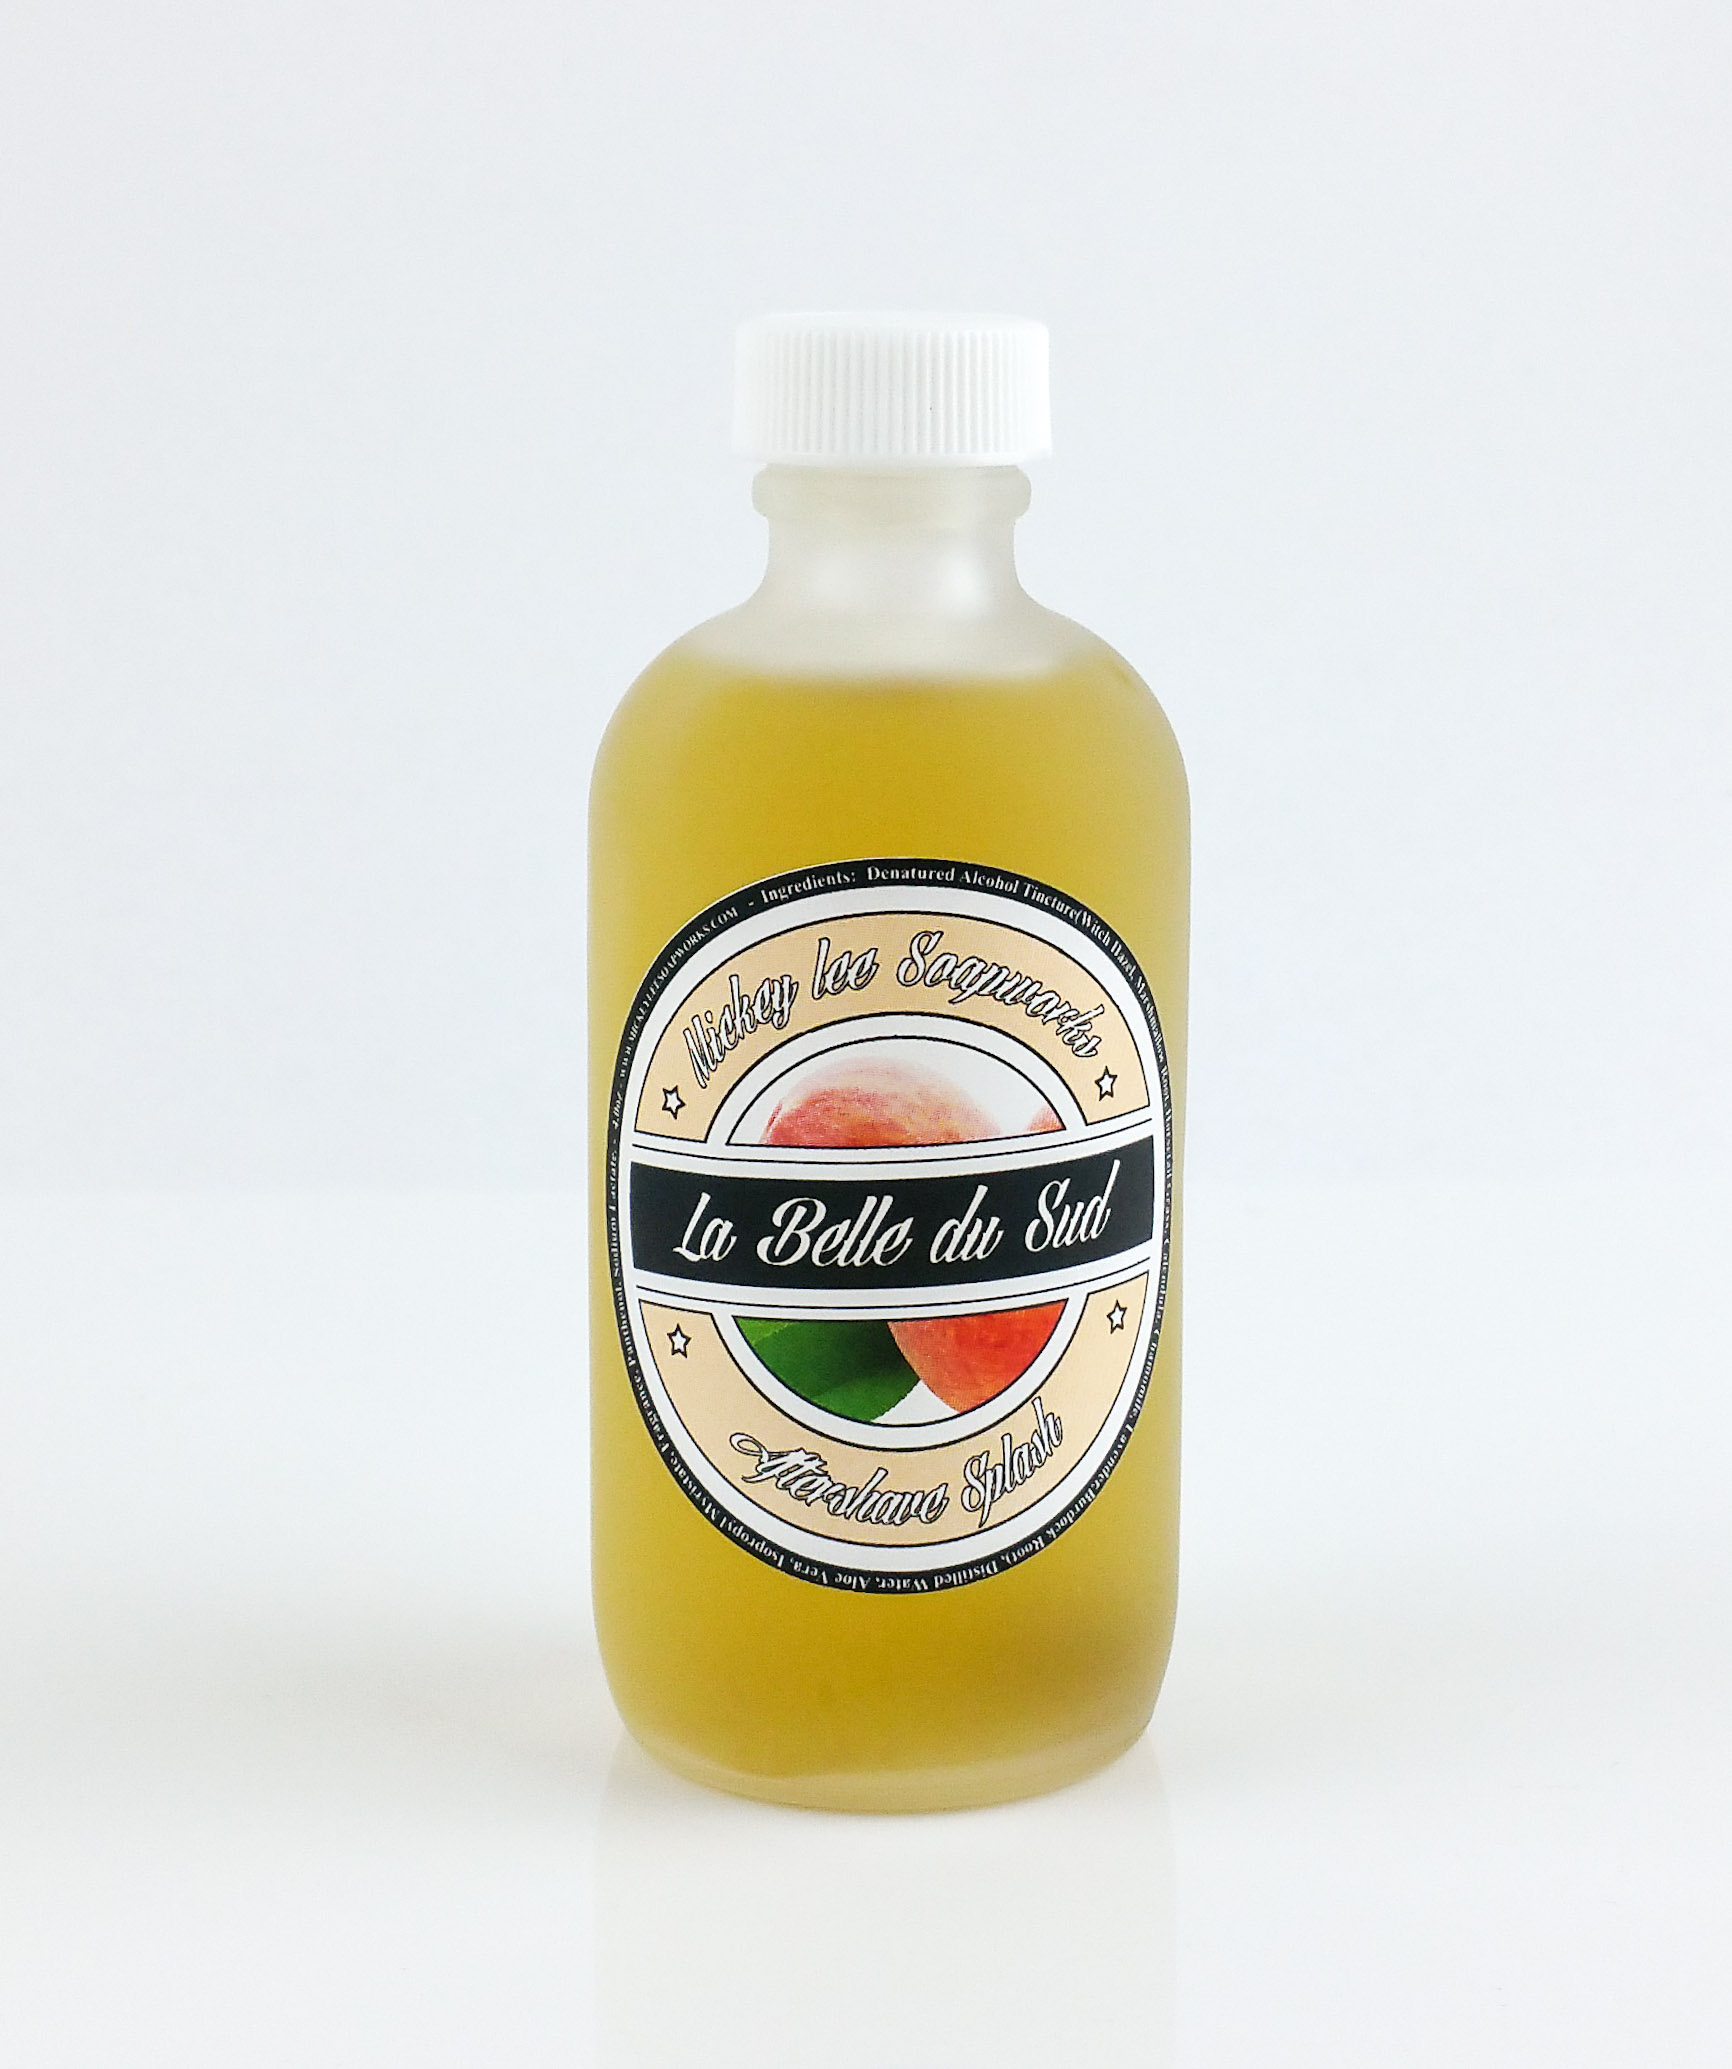 Mickey Lee Soapworks - La Belle du Sud - Aftershave image